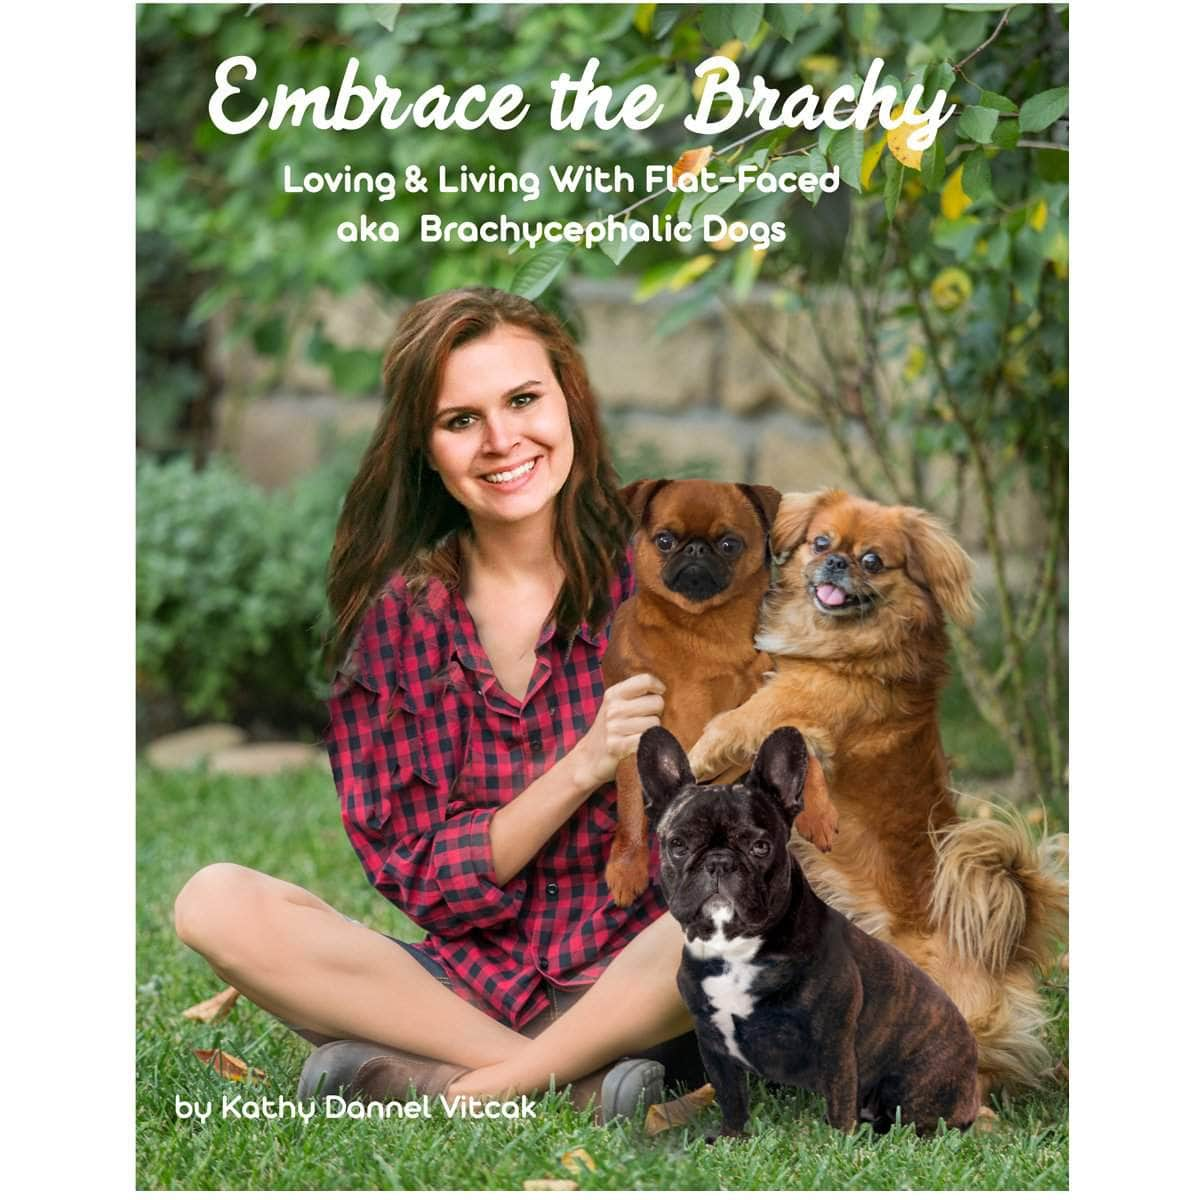 Embrace the Brachy Book